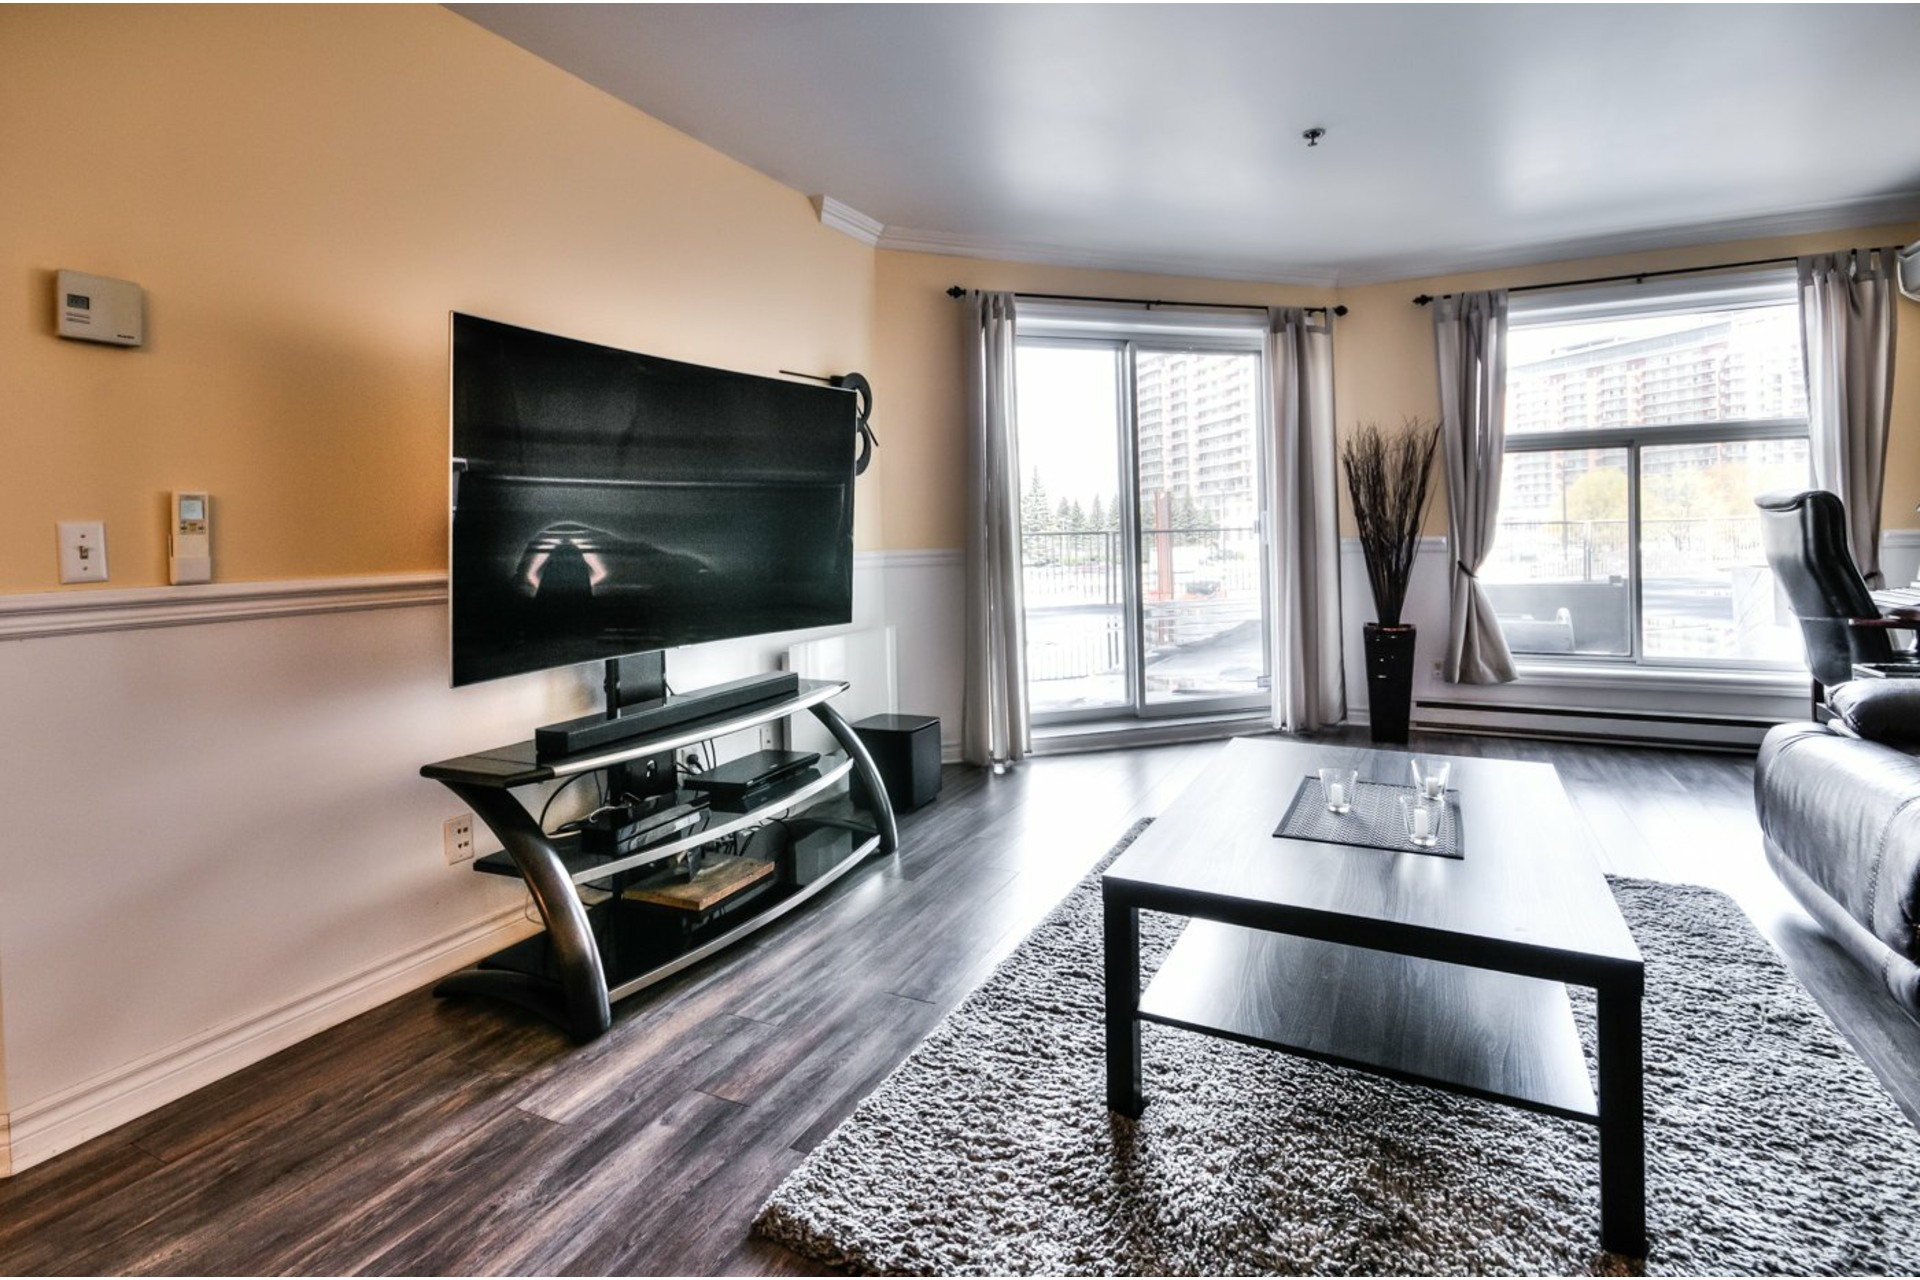 image 8 - Apartment For sale Brossard - 5 rooms